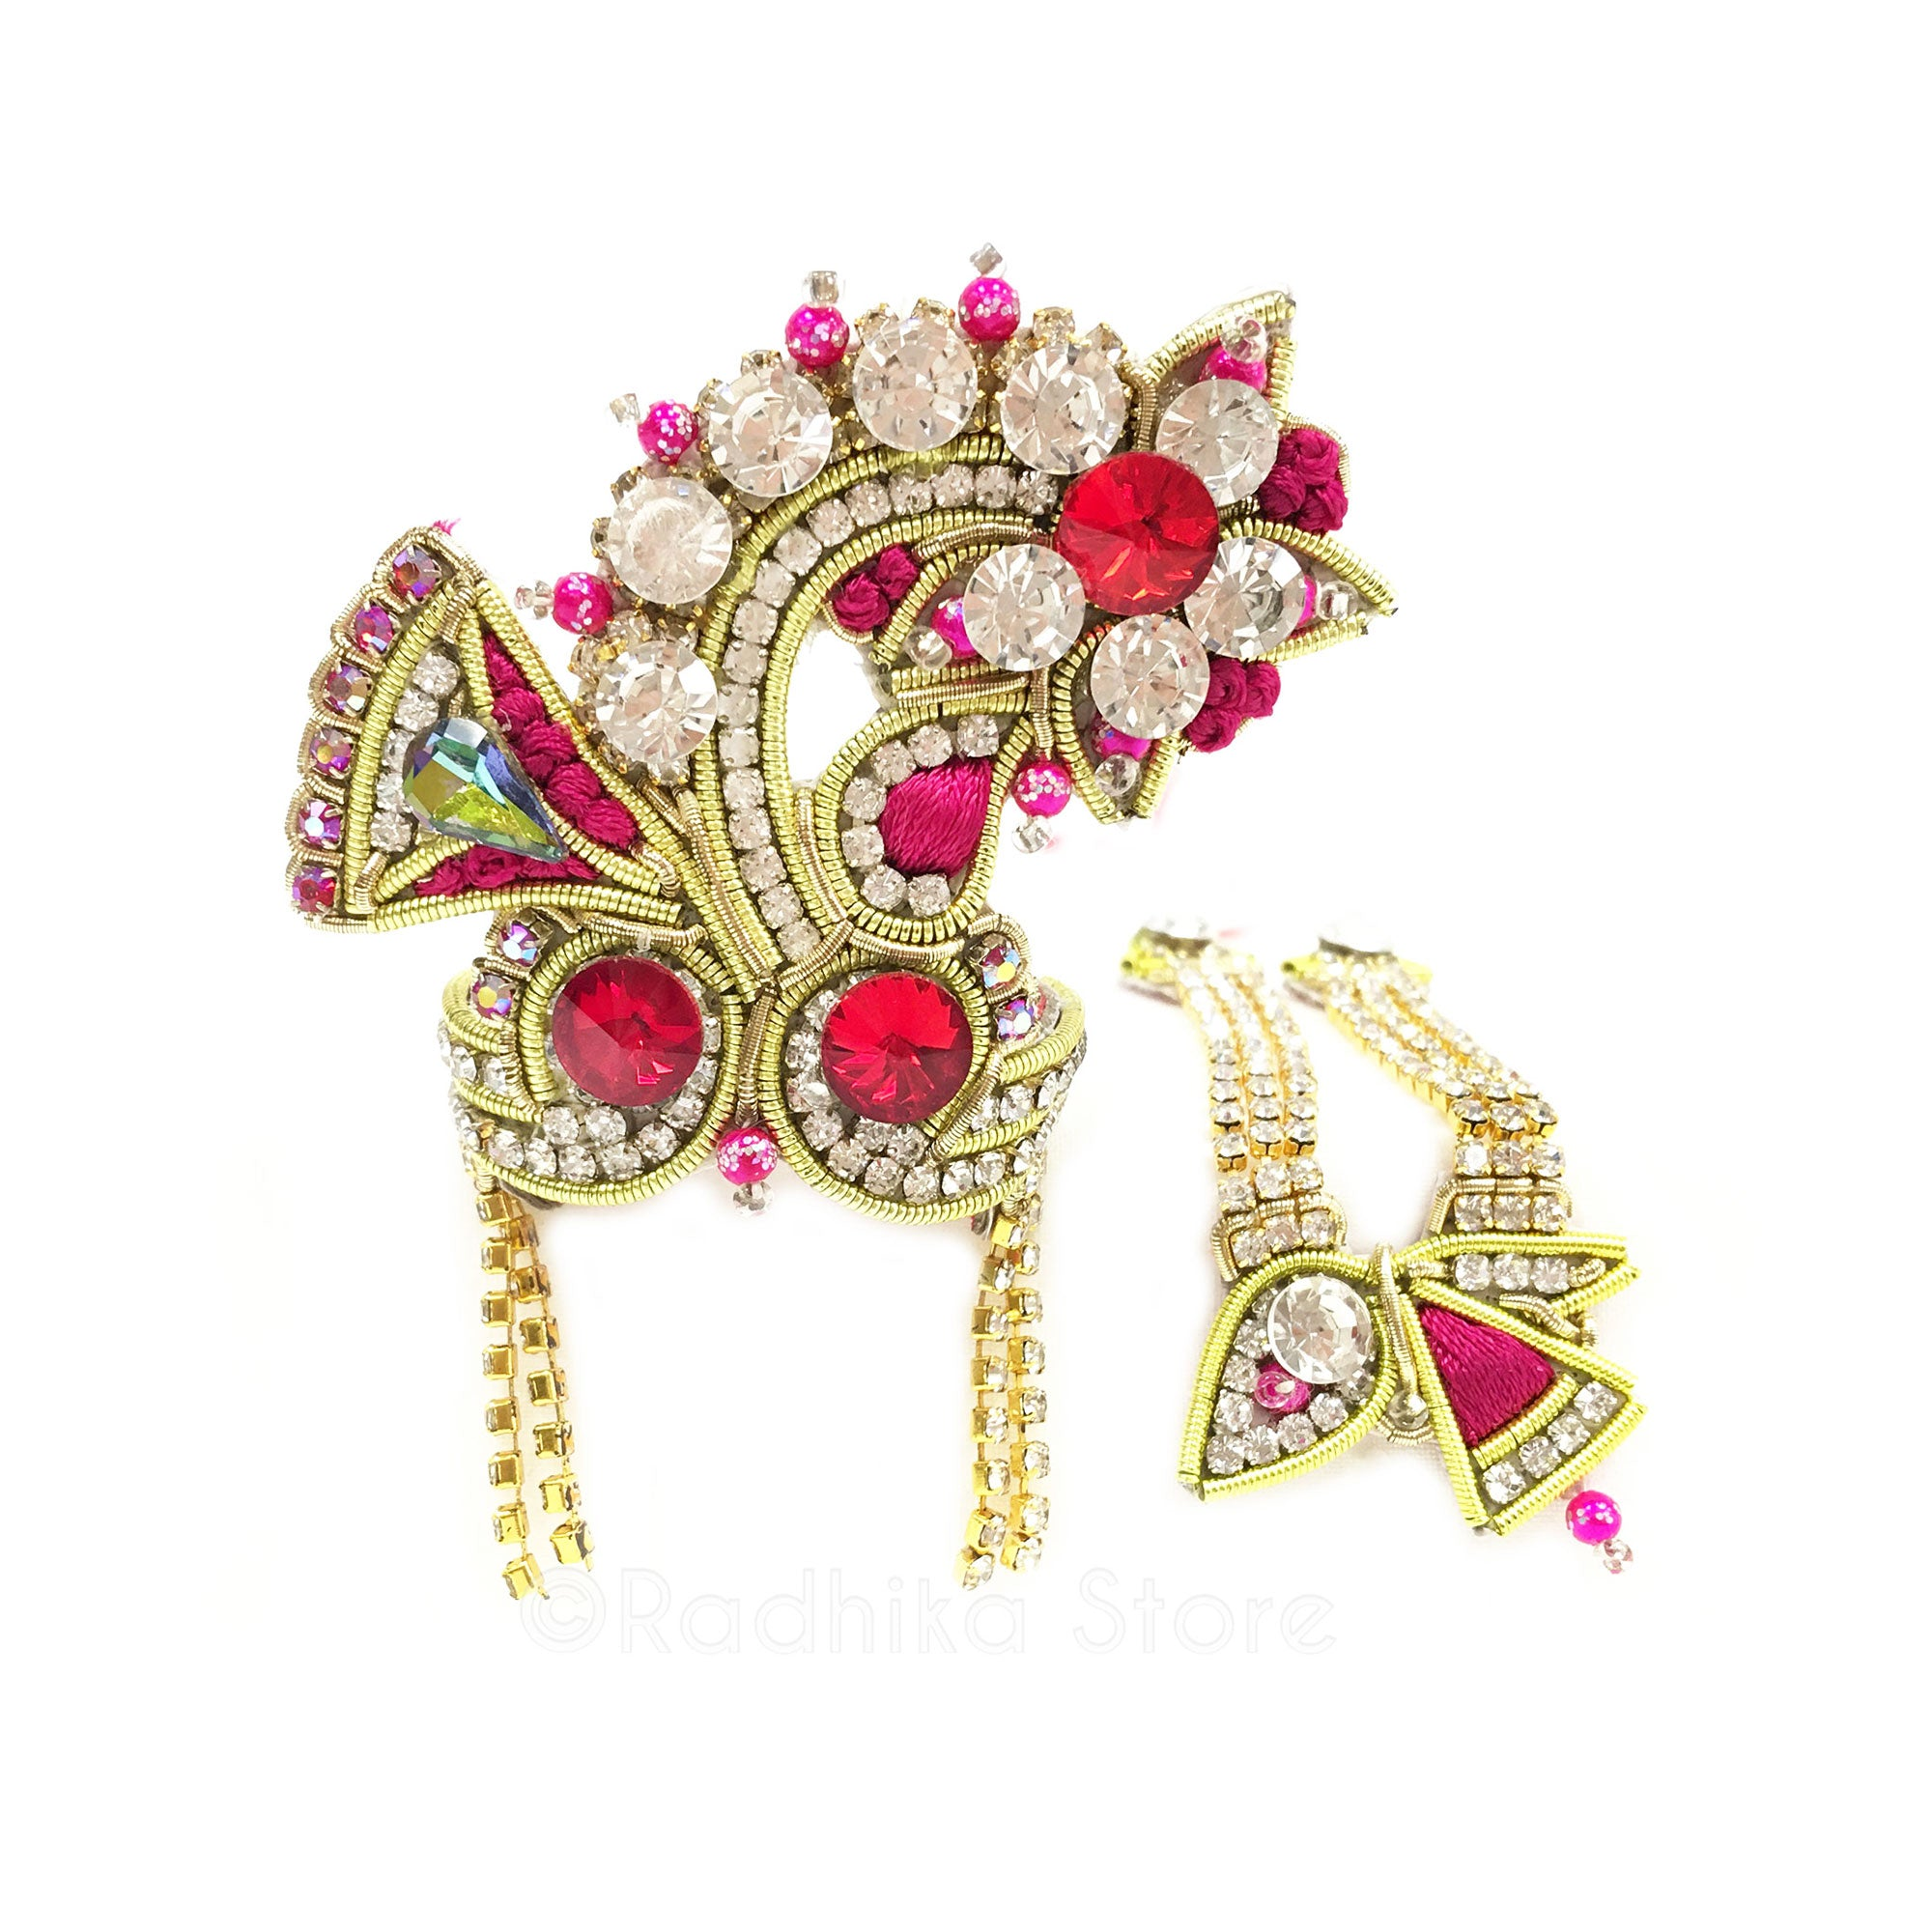 Manjari - Deity Crown and Necklace Set